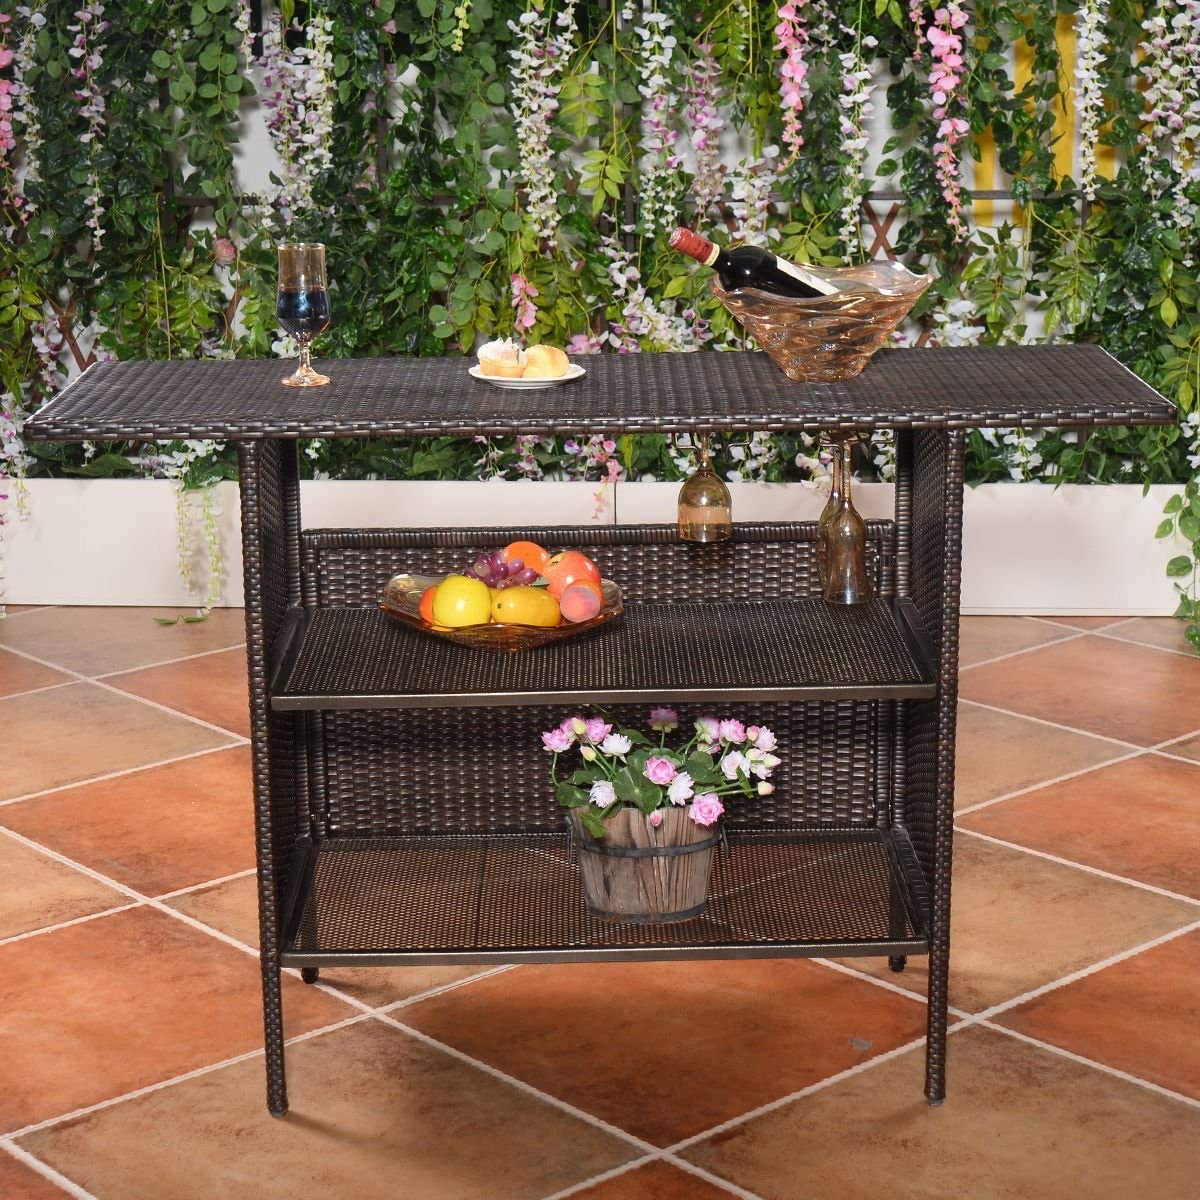 rattan bar counter outdoor patio rattan wicker bar counter table with 2 storage shelves 2 sets of rails condole cup holders for back yard poolside